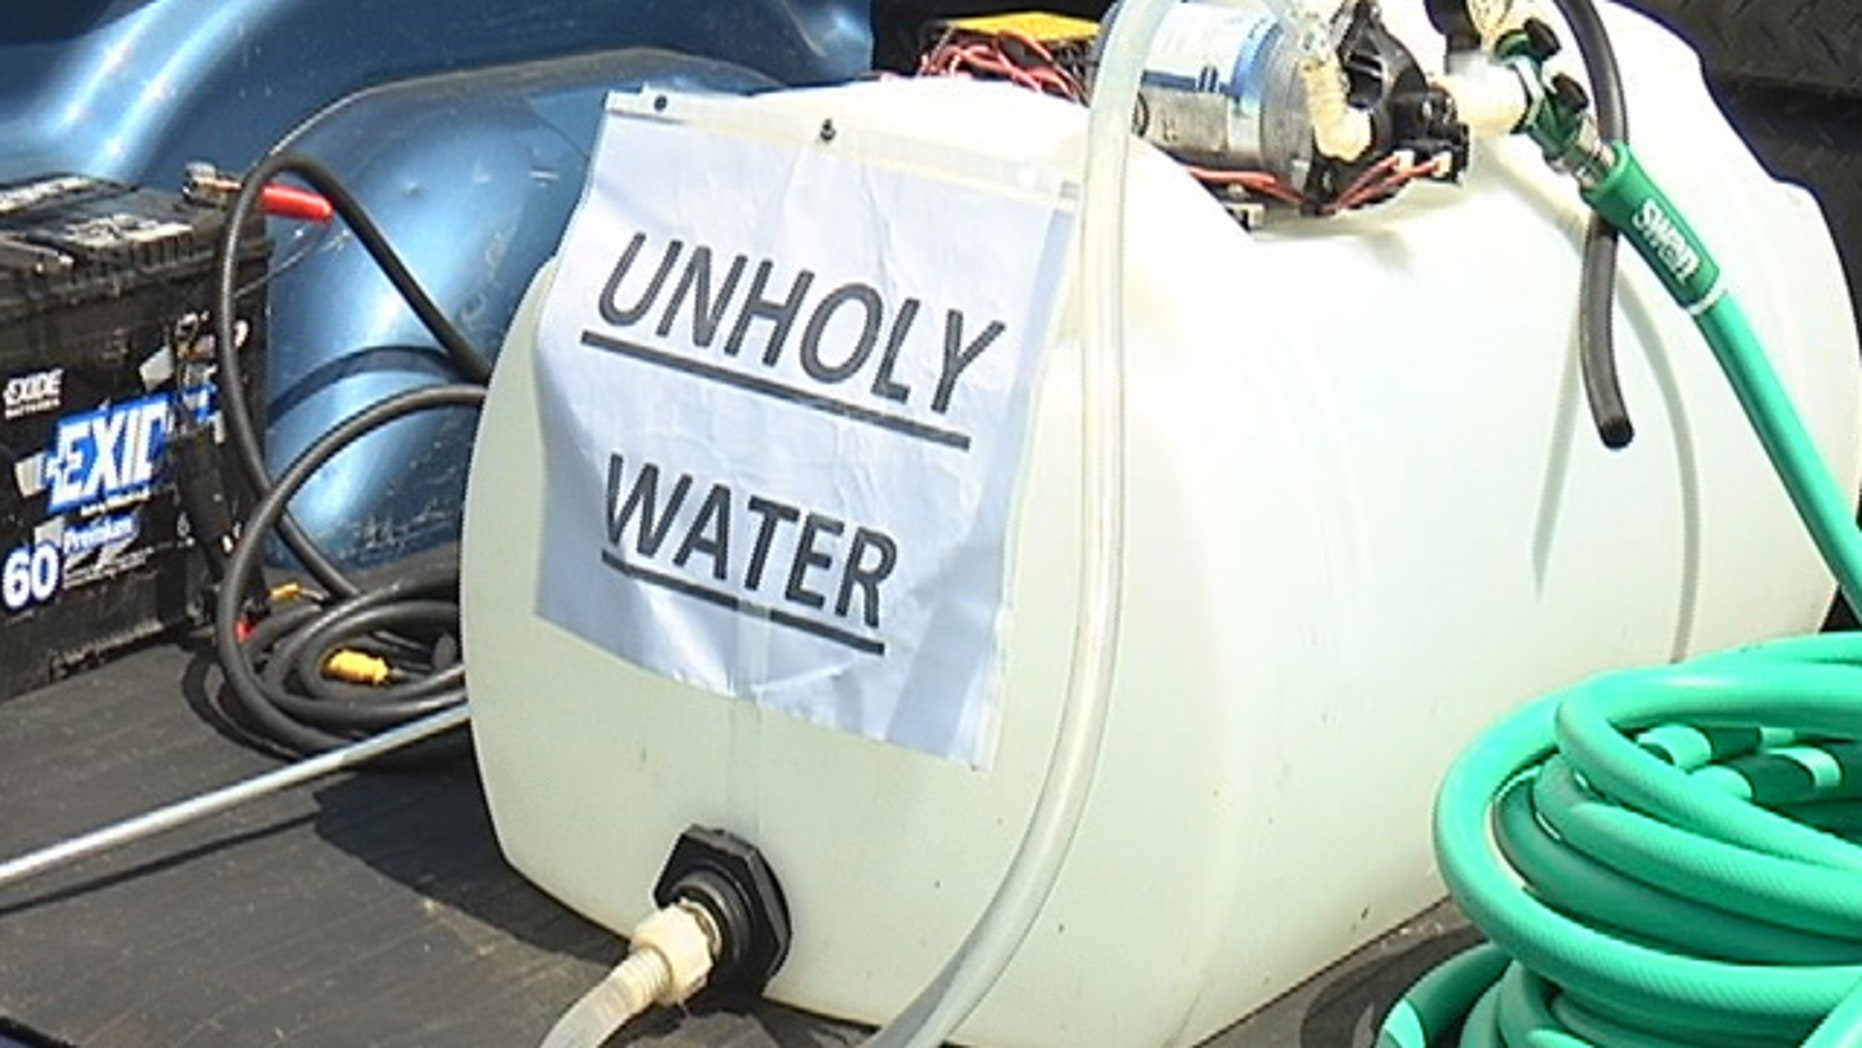 A group of athiests used 'unholy water' to wash away a religious group's blessing at the entryway to Polk County.